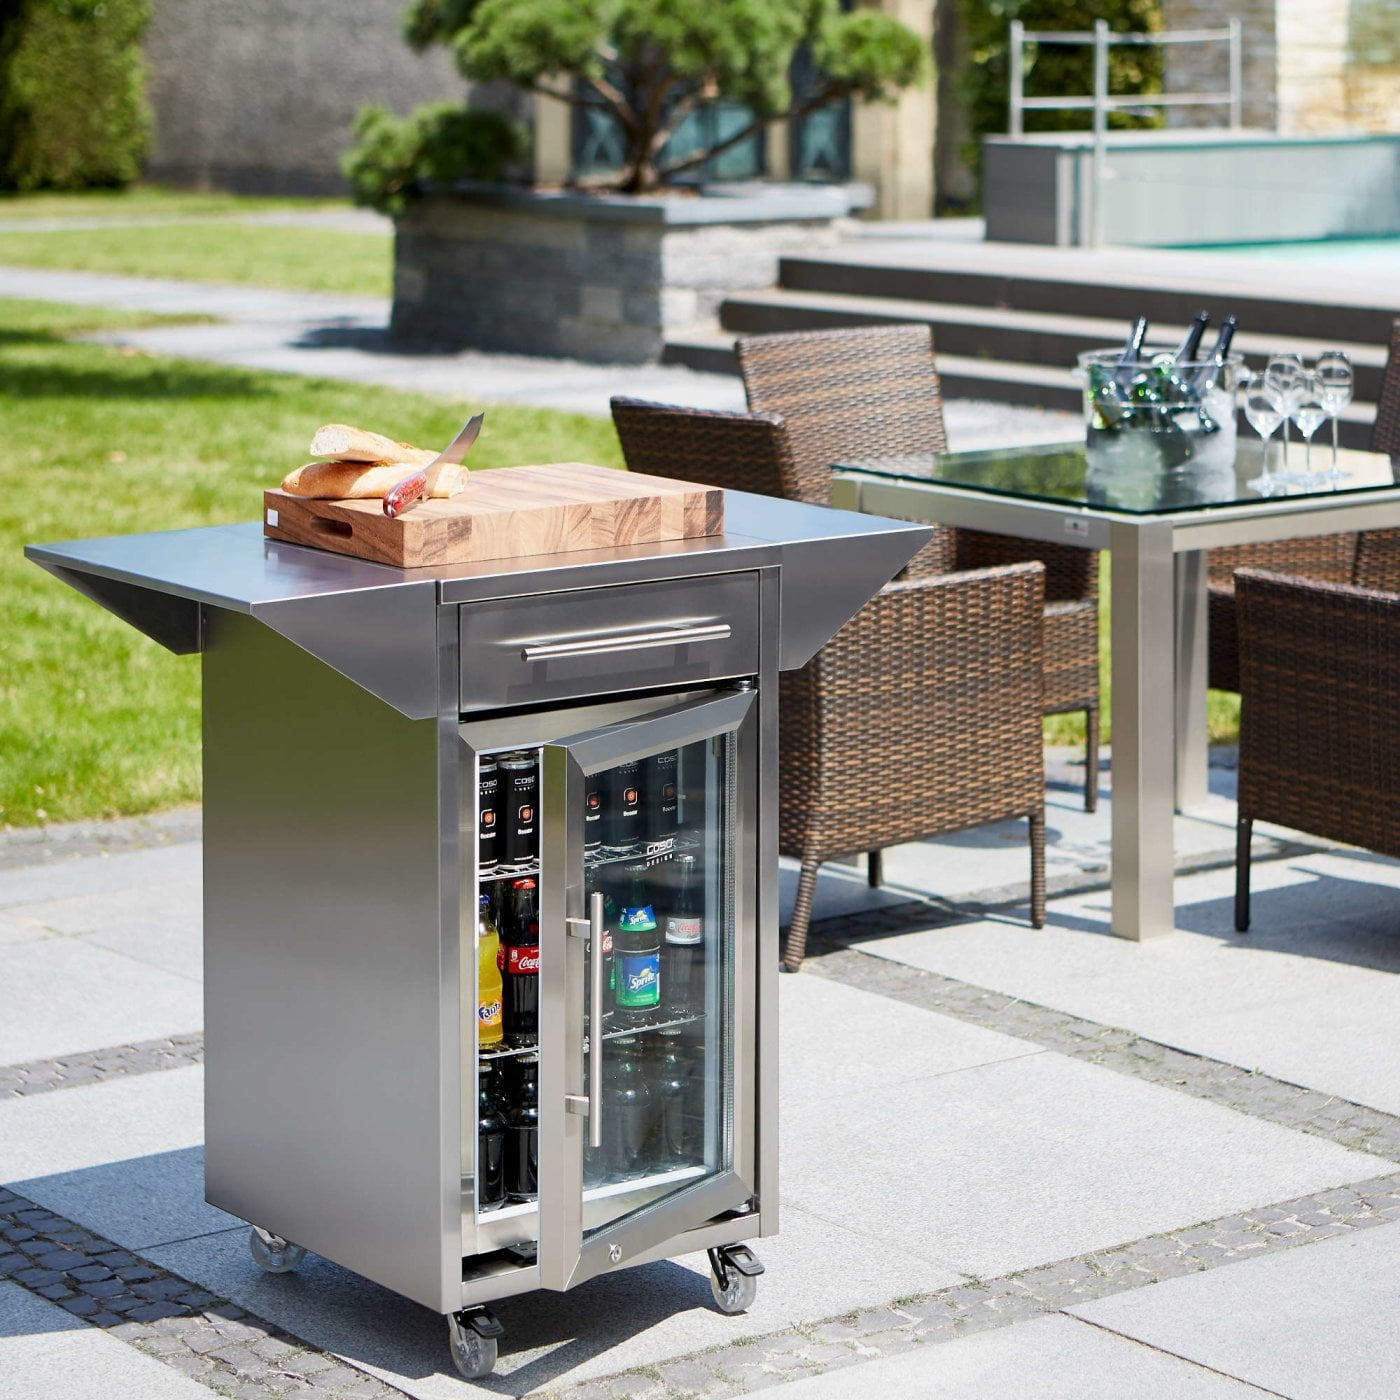 stainless steel trolley with side